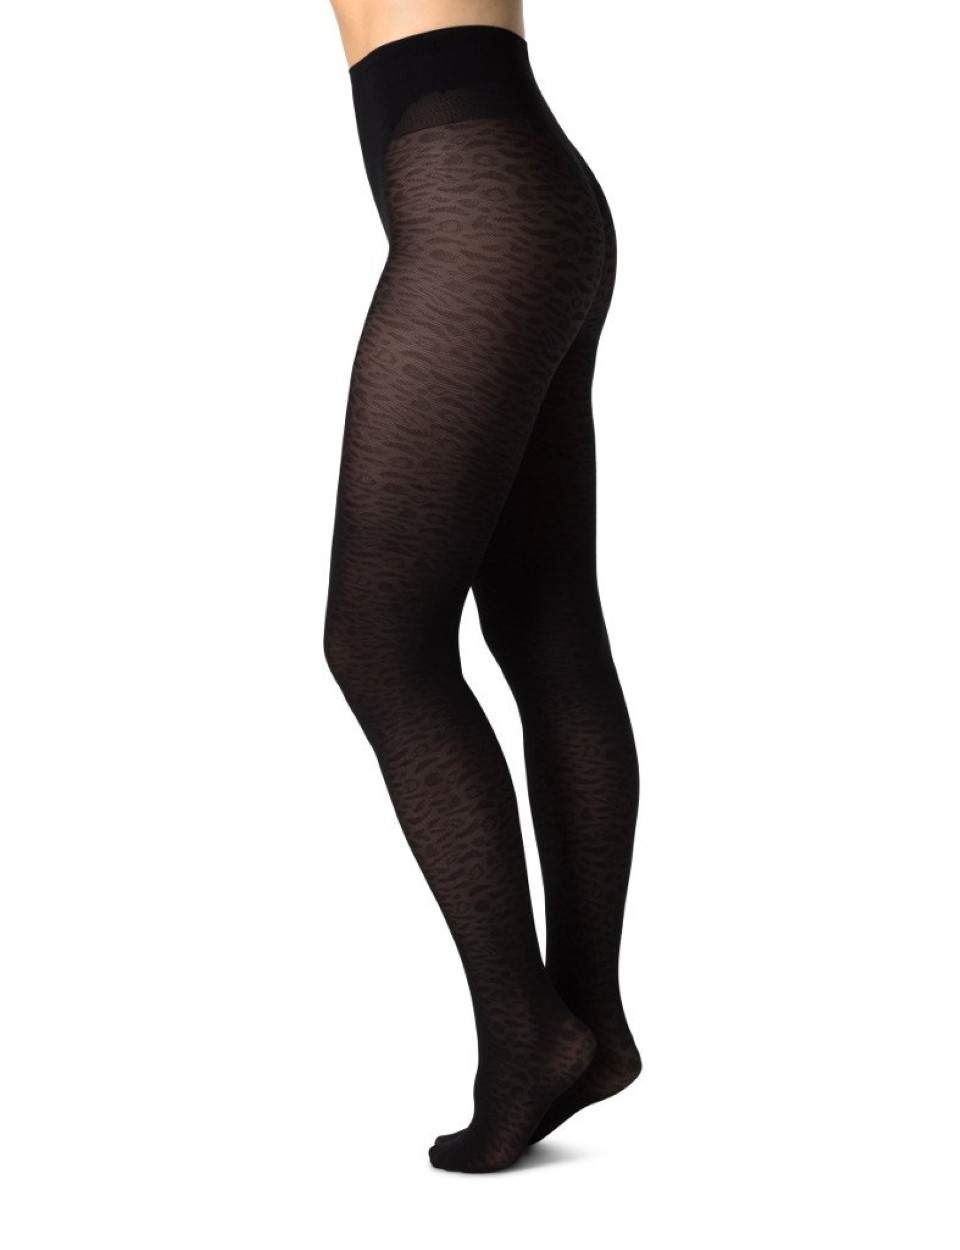 Swedish Stockings zwarte panty met leopard motief